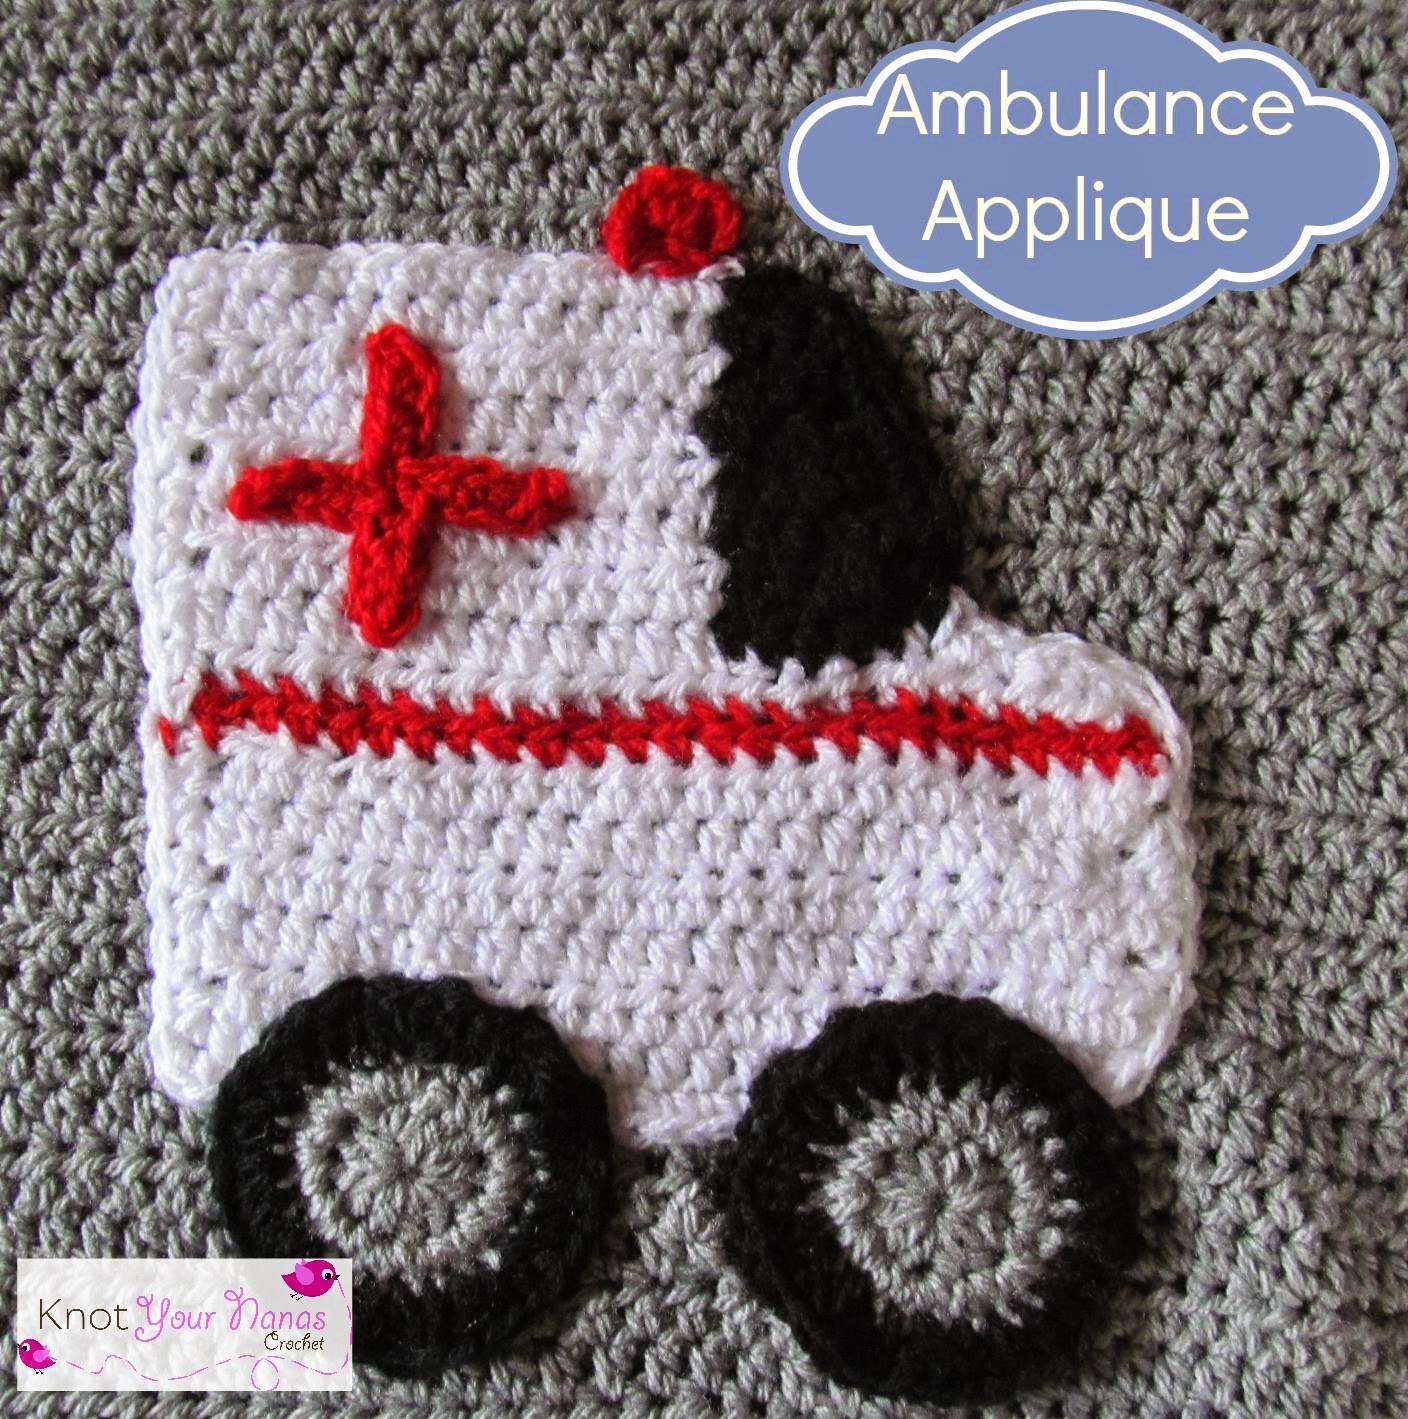 Crochet-Ambulance-Applique